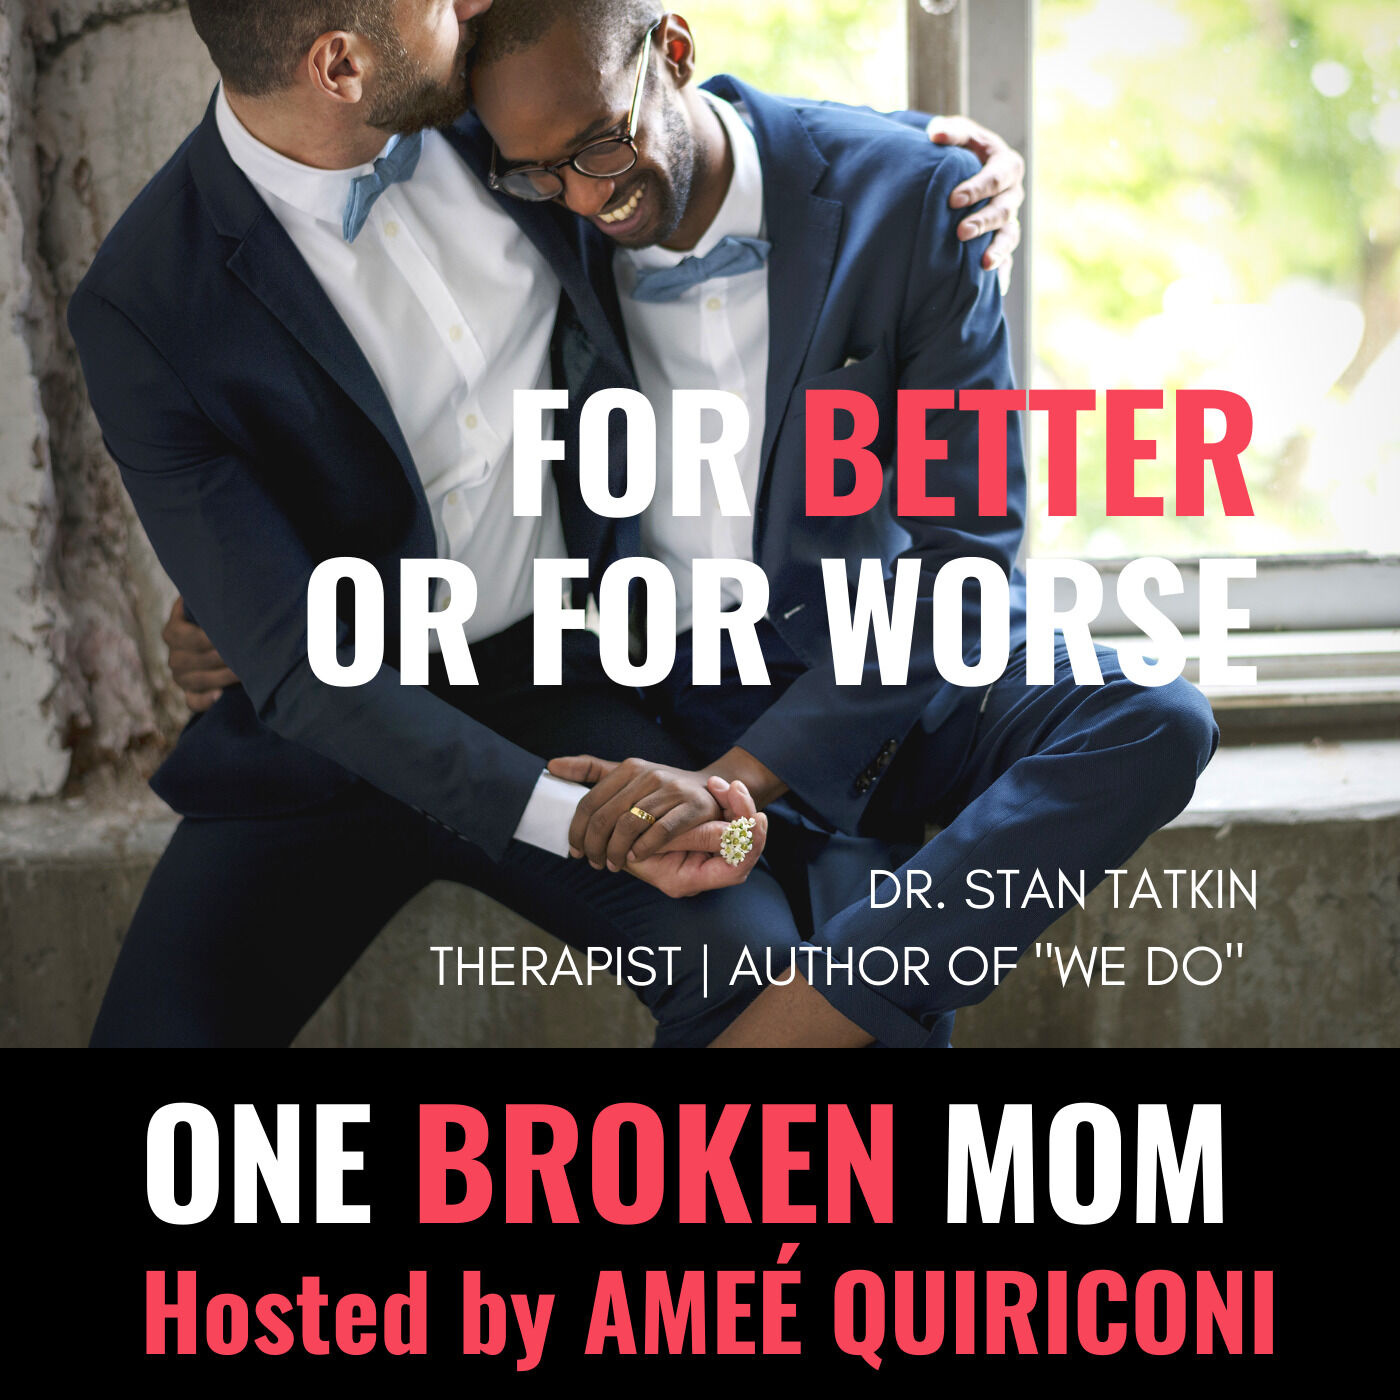 For Better or For Worse with Dr. Stan Tatkin